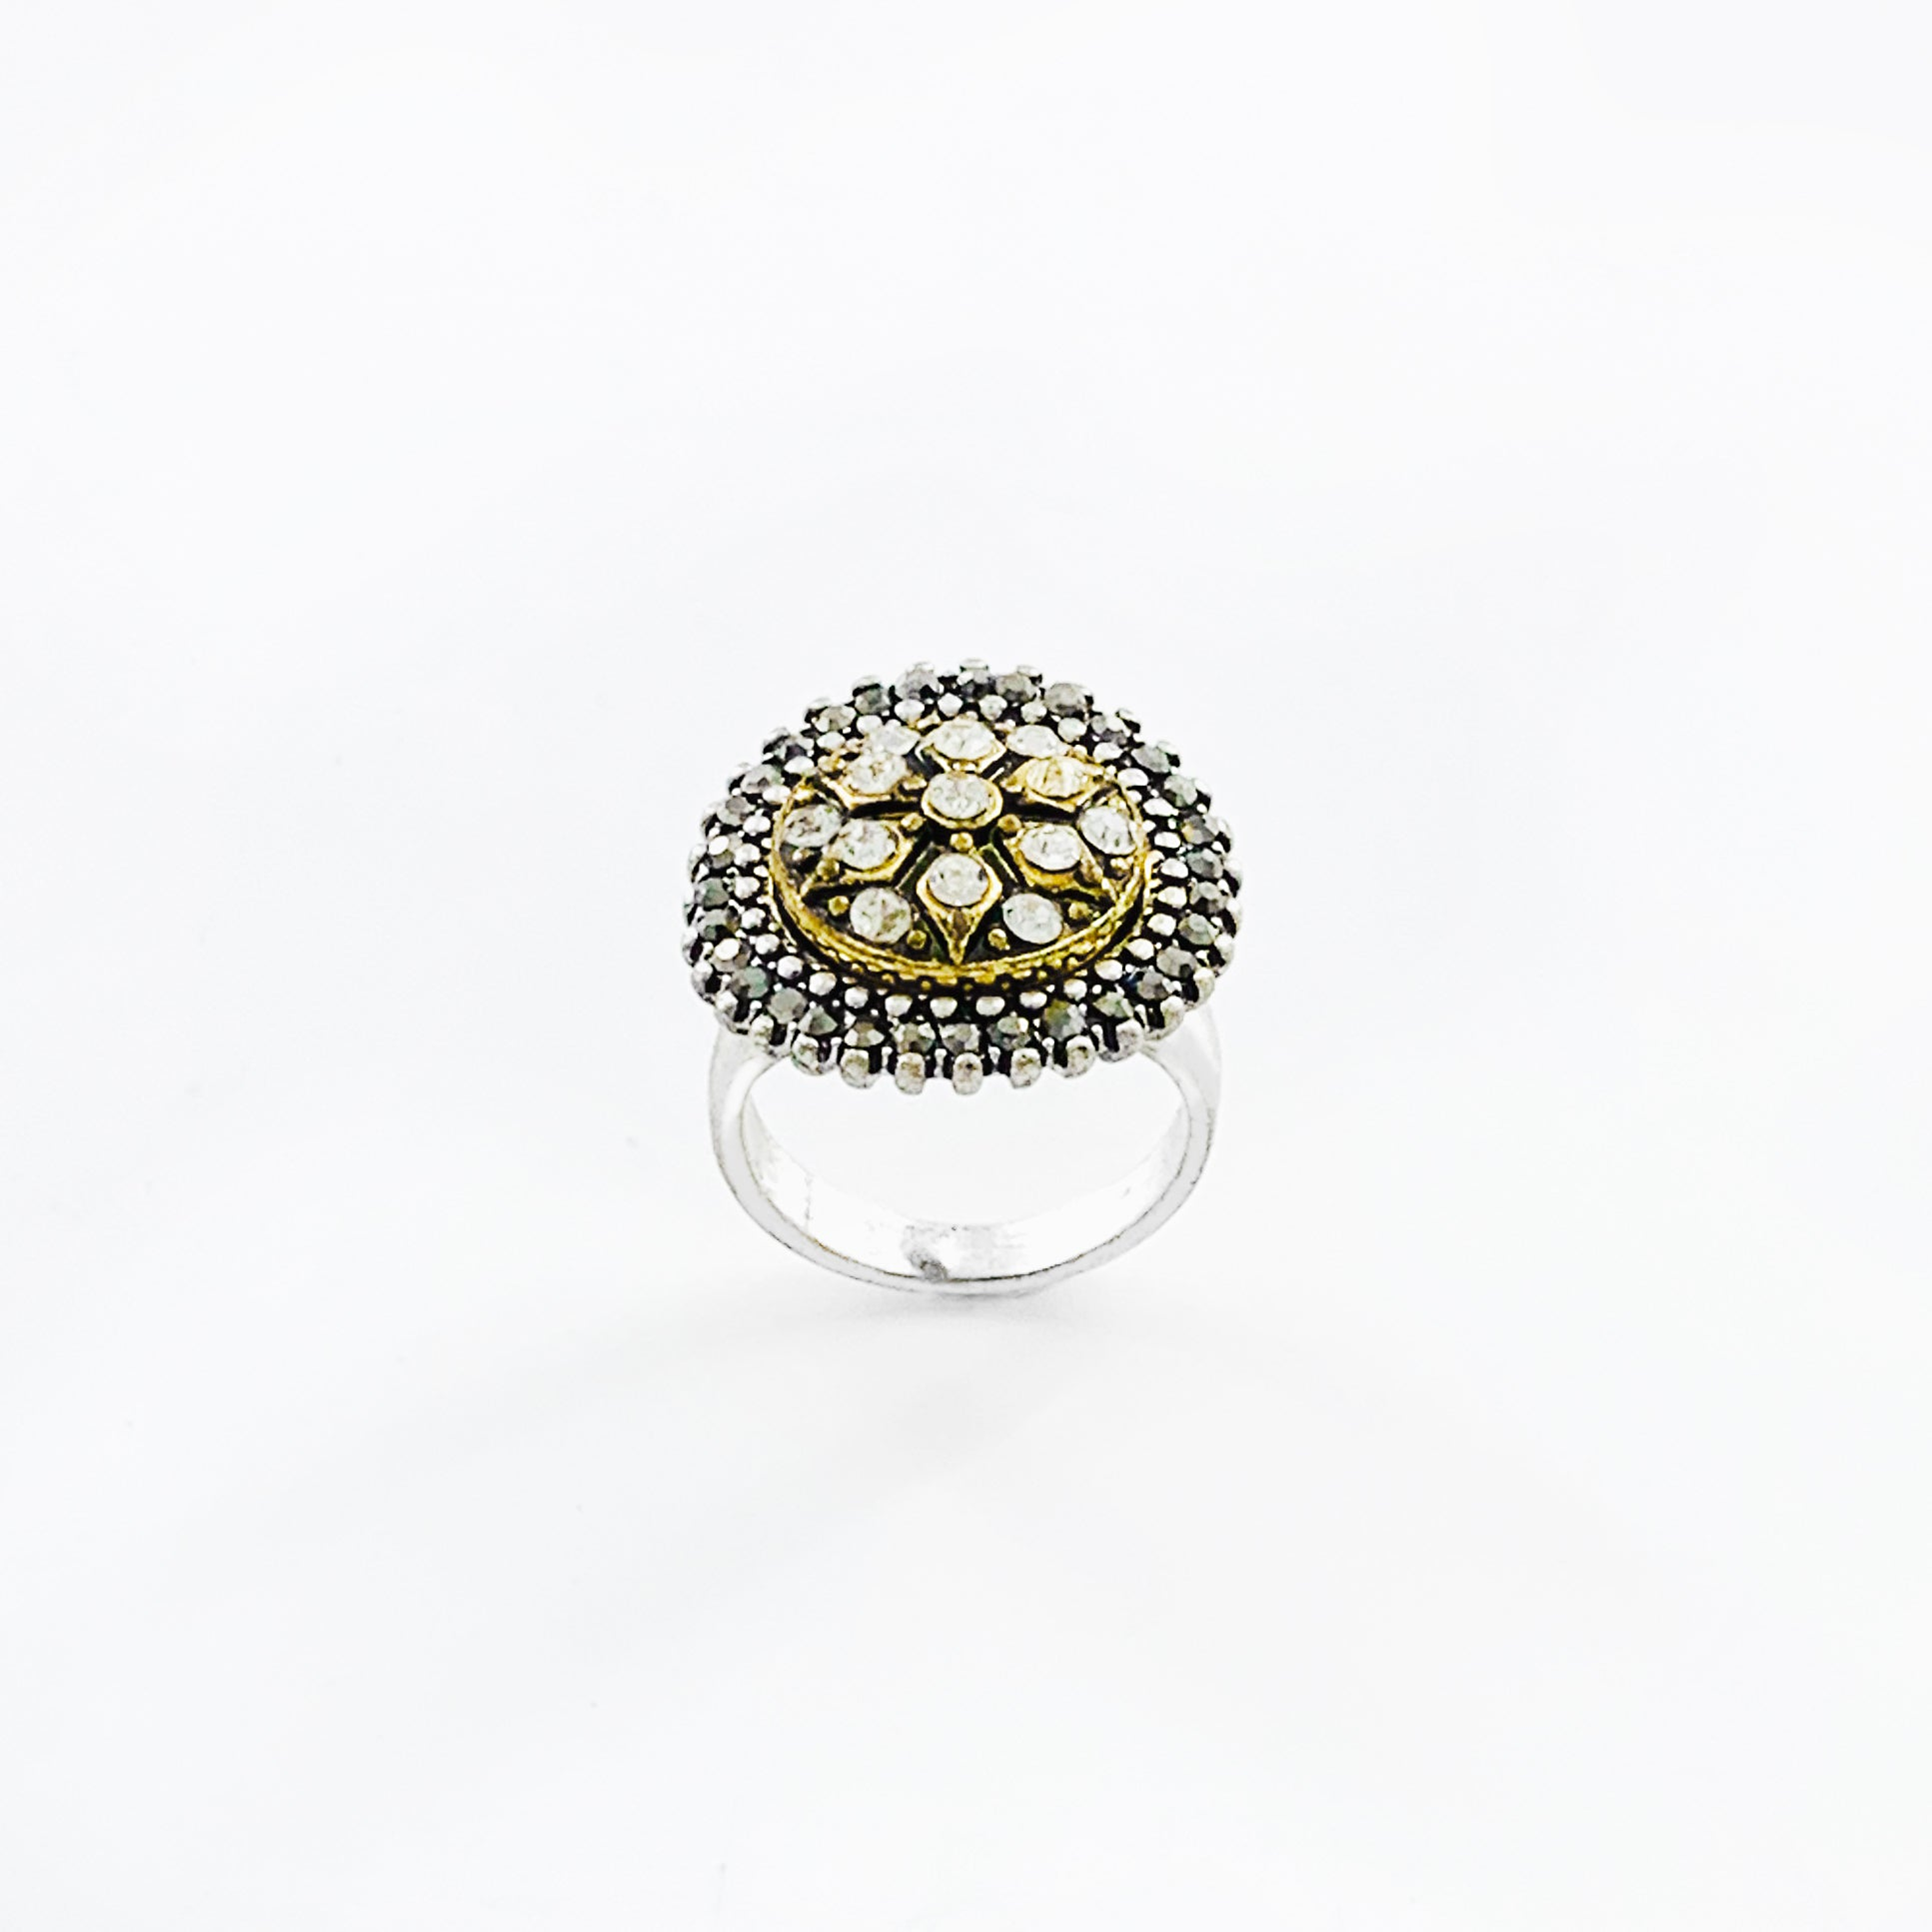 Silver ring with diamante studs in gold and grey